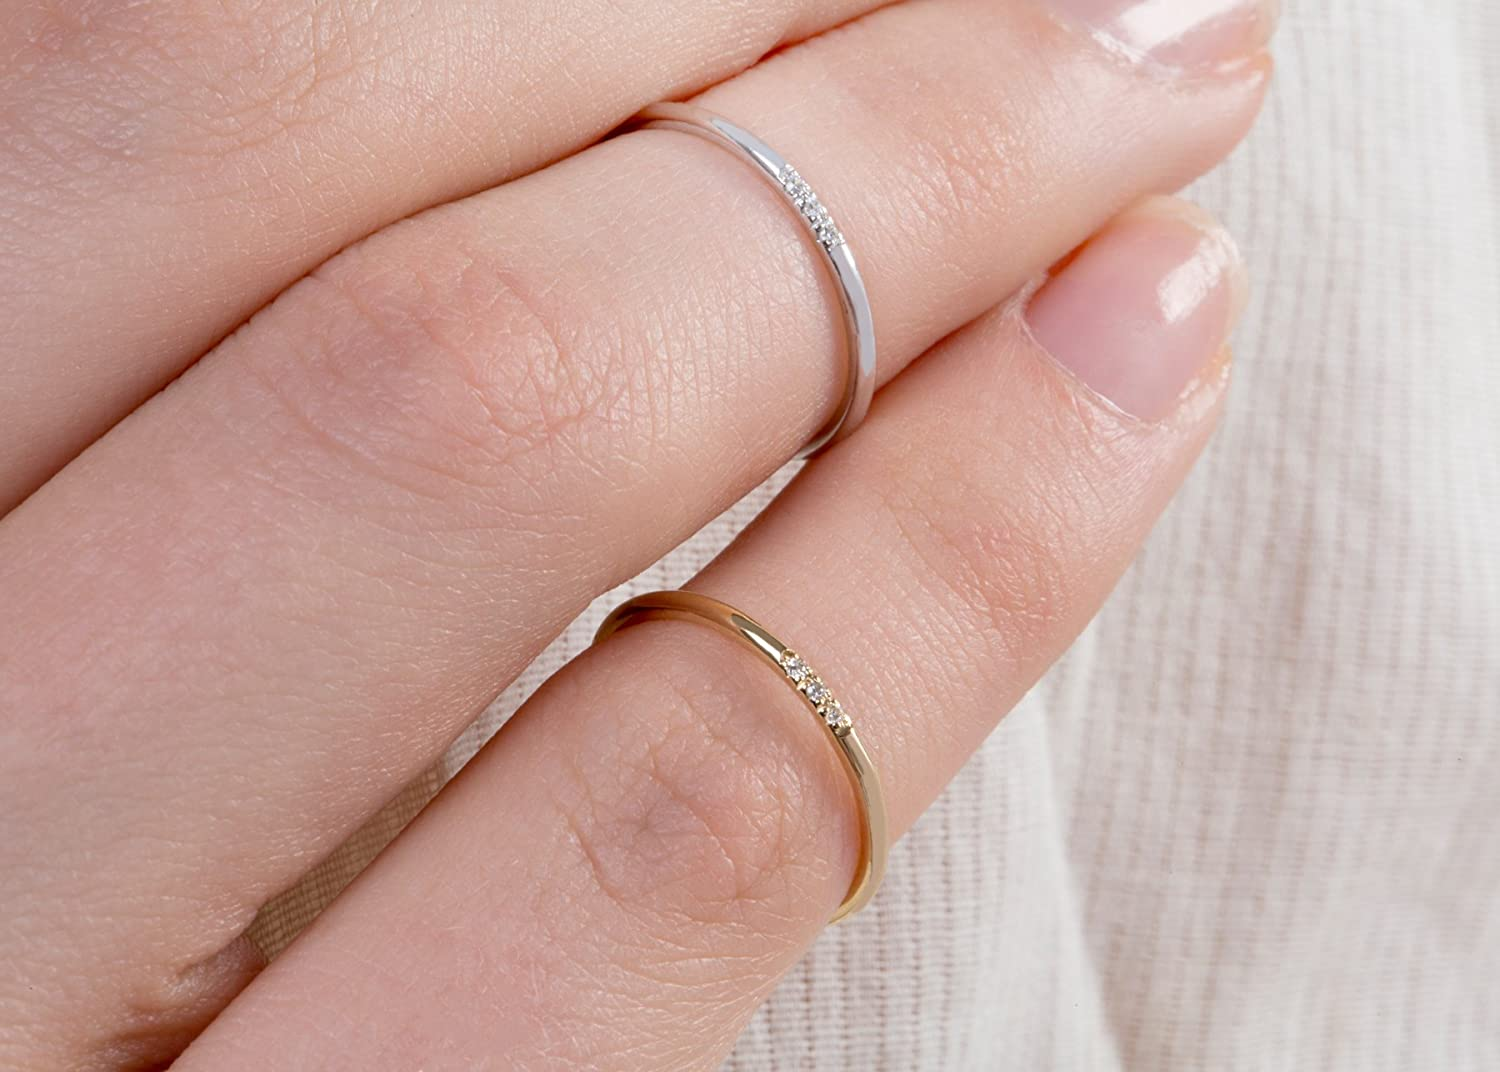 Amazon.com: Ultra thin diamond band, Solid gold diamond ring ...